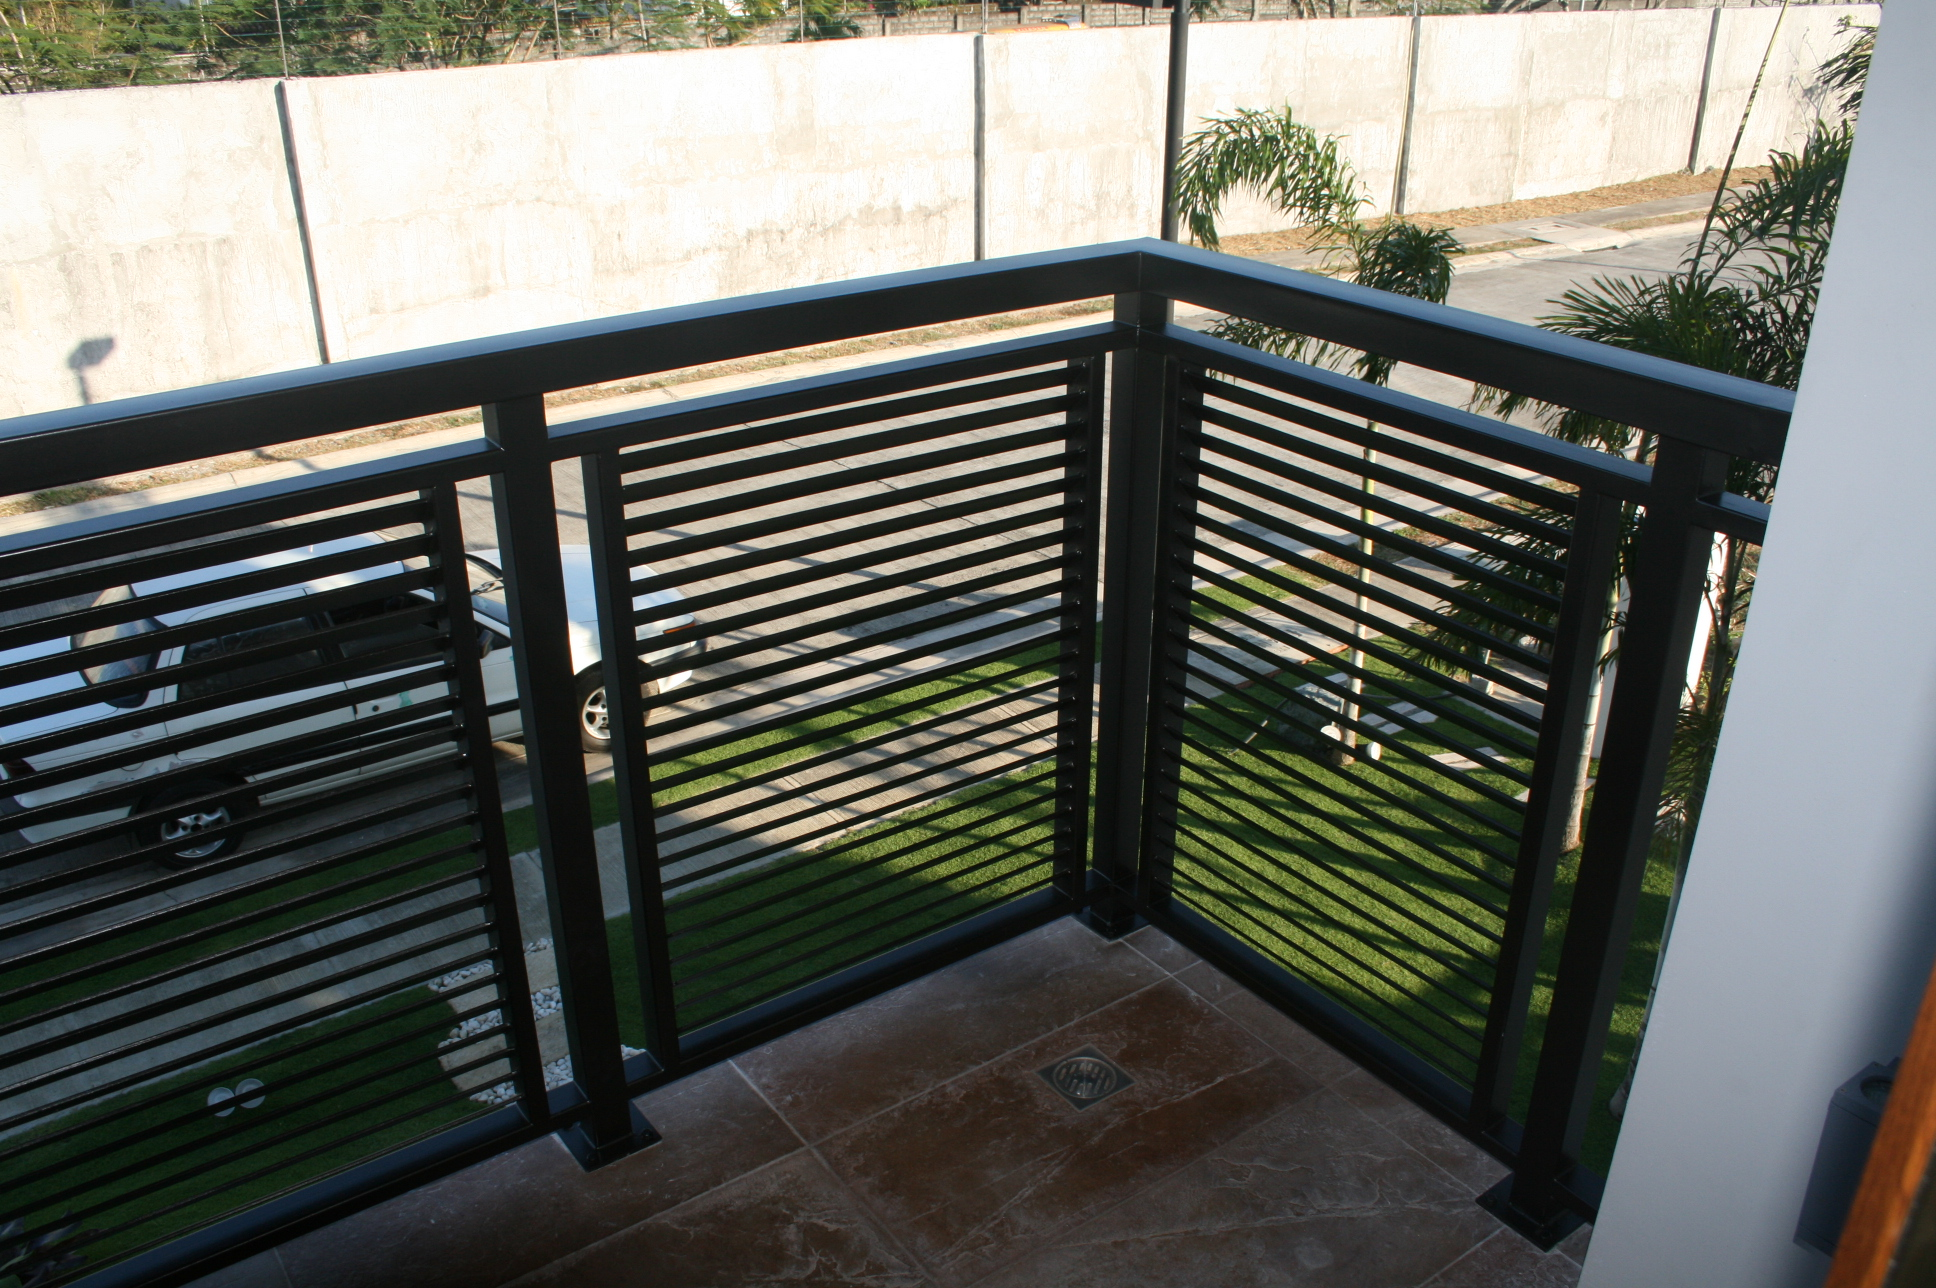 Stainless balcony railings design philippines joy studio for Terrace railings design philippines